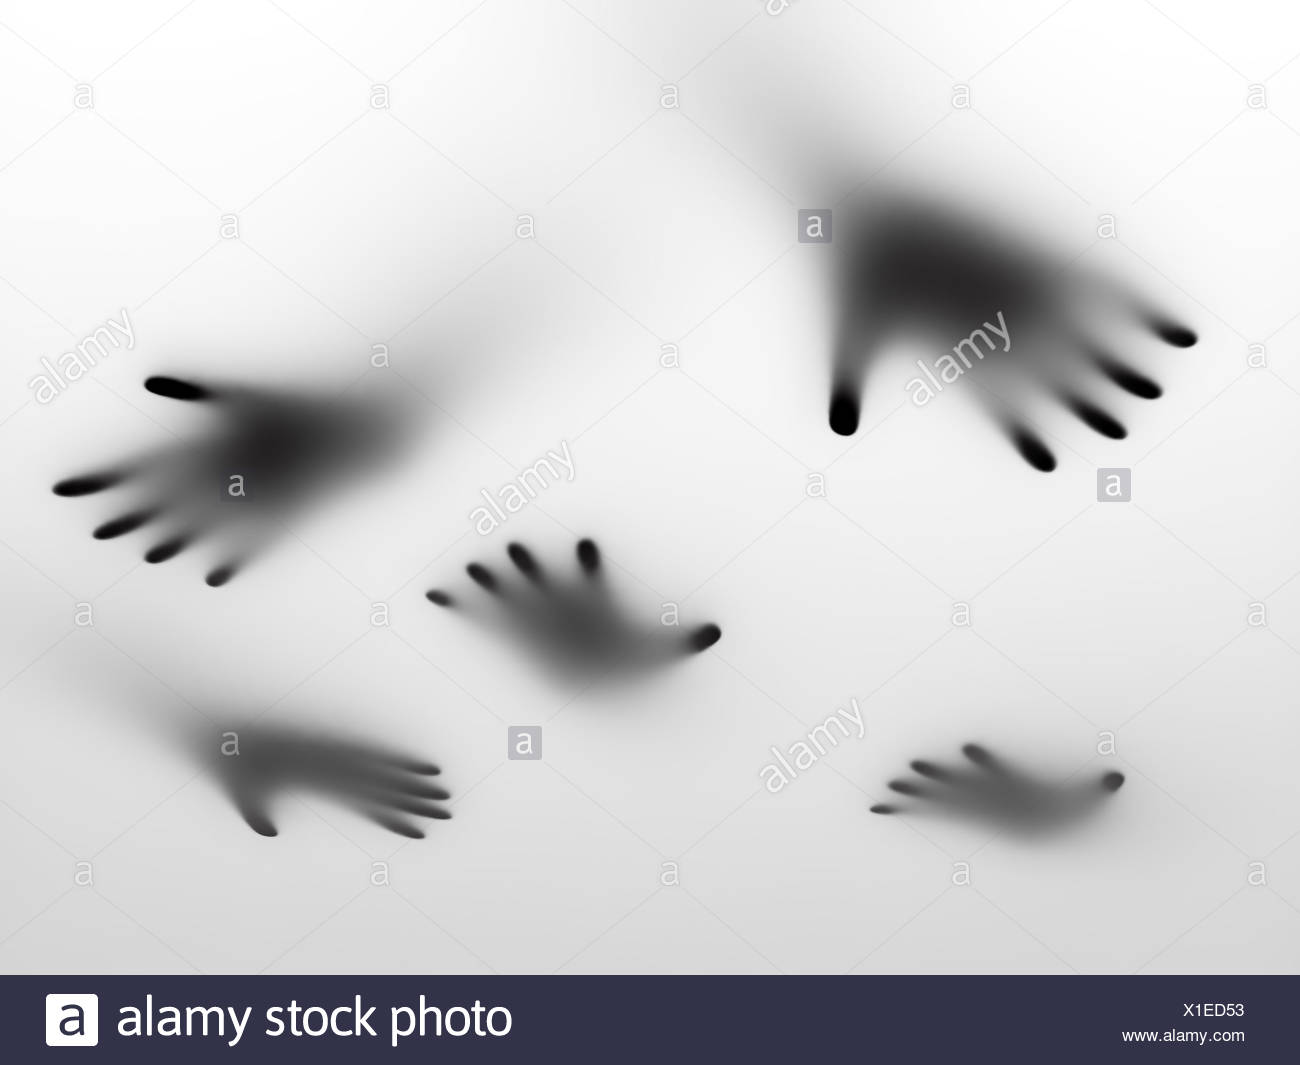 Abstract hands behind a frosted glass surface - Stock Image